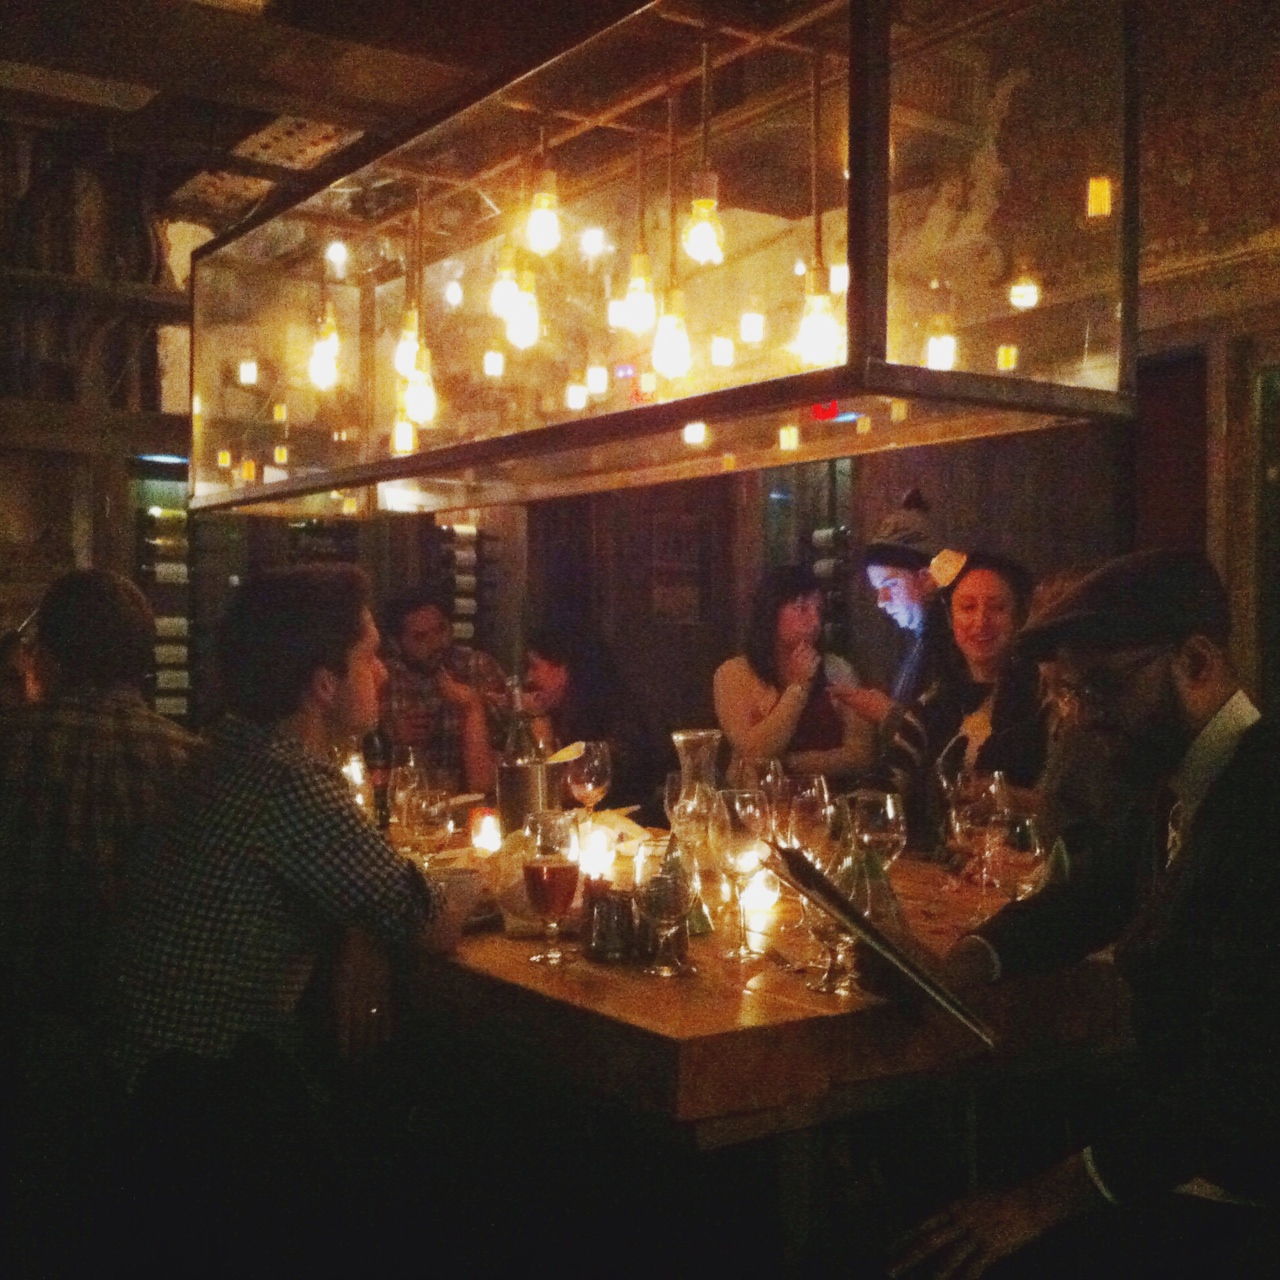 Chef's Table at Fraunces Tavern, Financial District